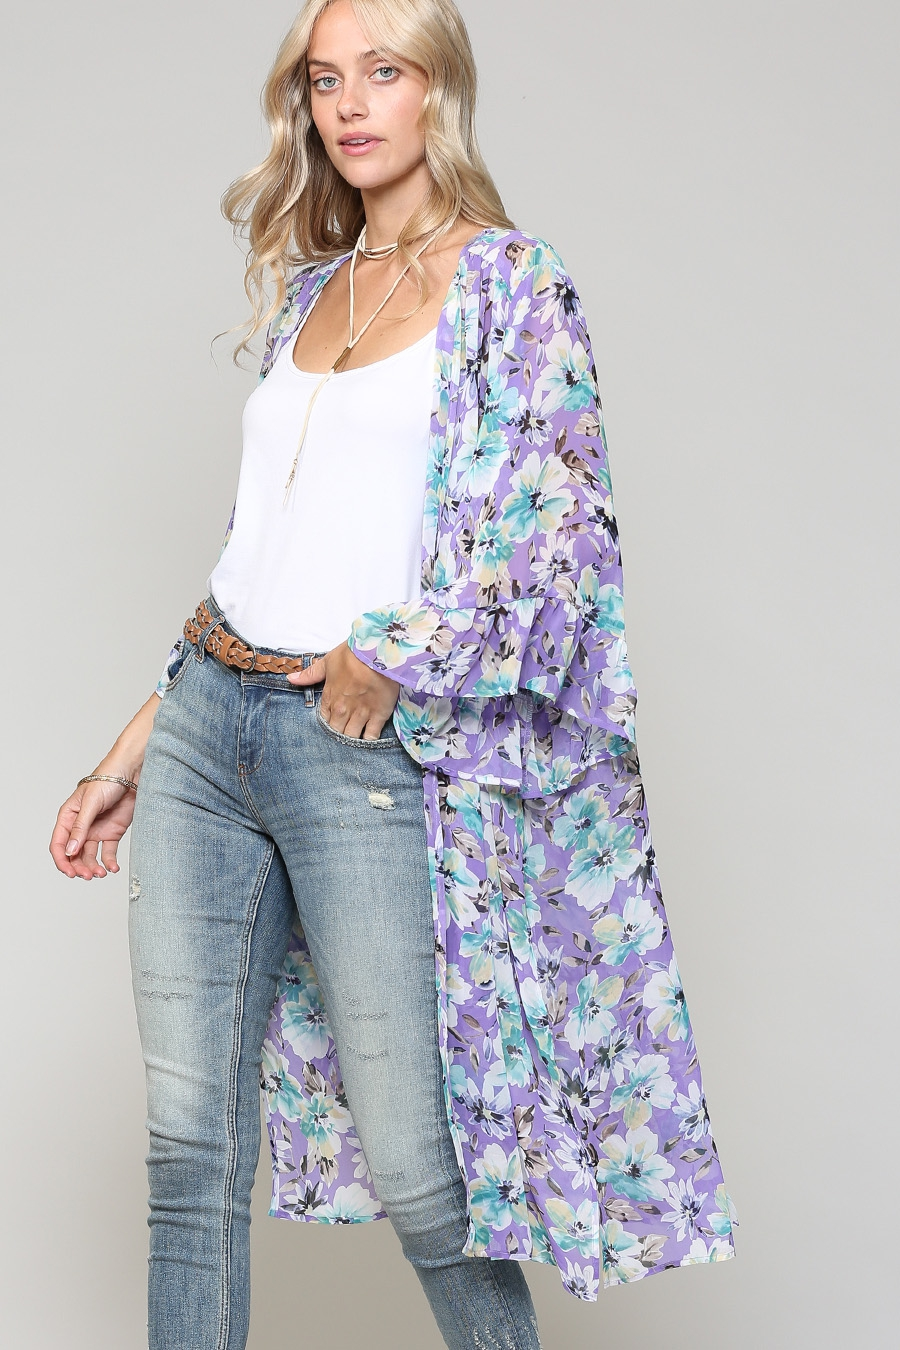 FLORAL SHEER LIGHT WEIGHT CARDIGAN - orangeshine.com